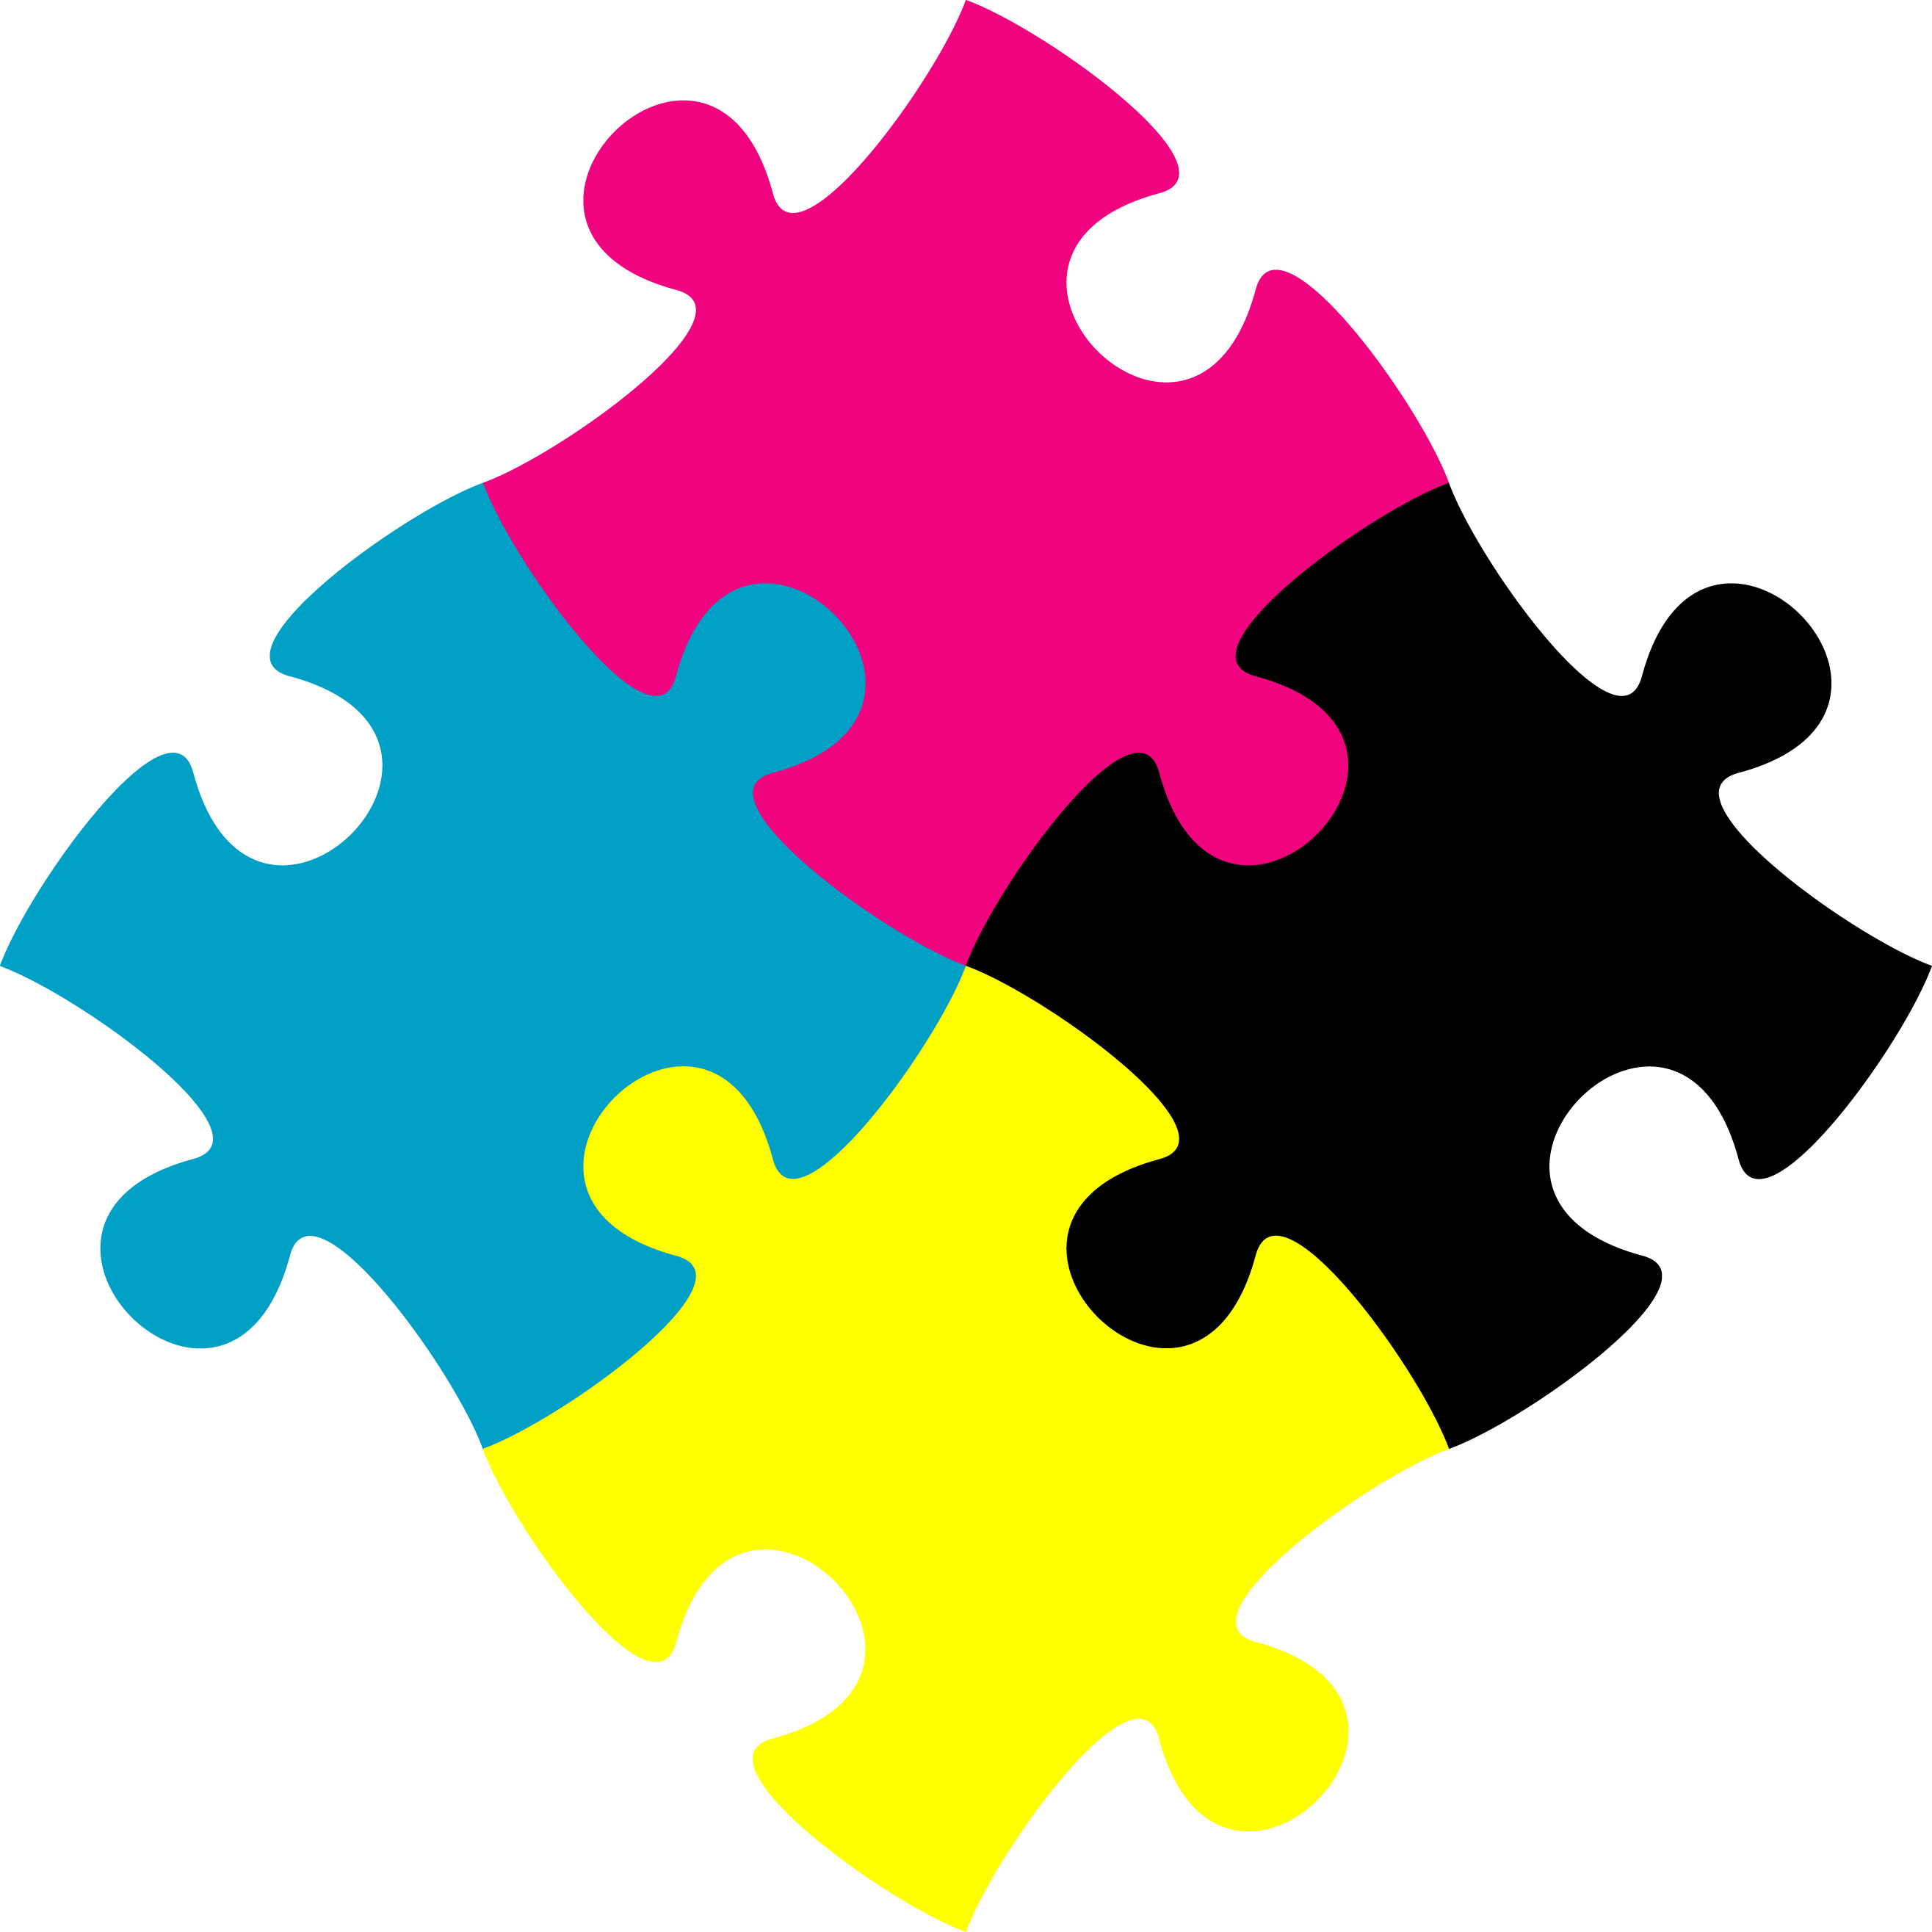 PNG Jigsaw Puzzle Pieces - 48996